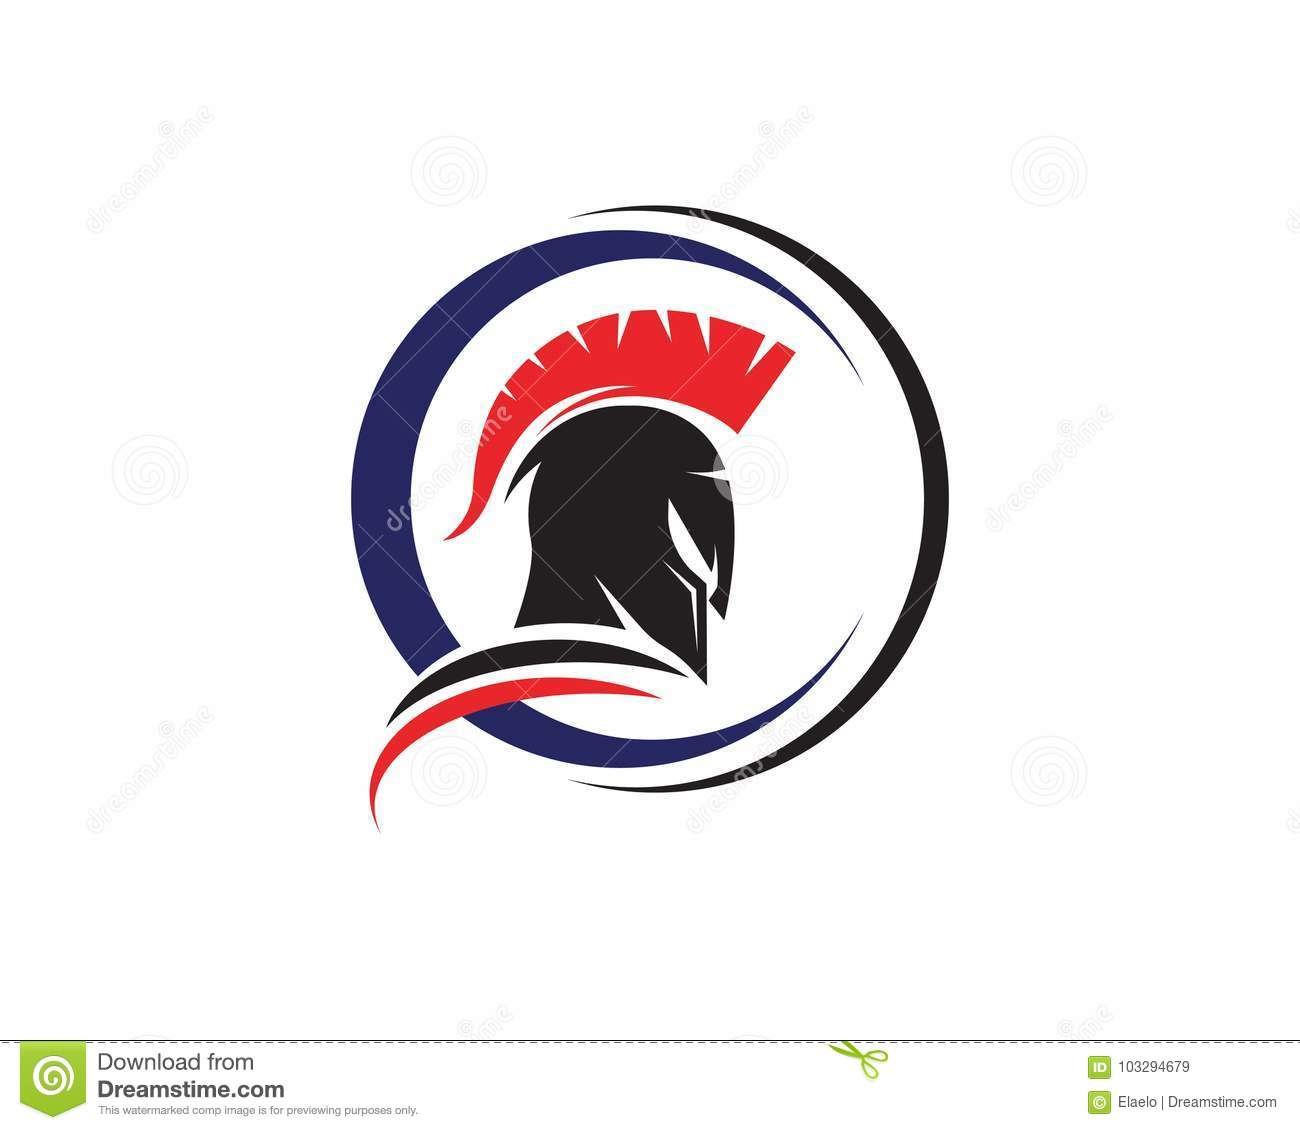 22c9868c1bb43 Spartan helmet logo template vector icon design. Designers Also Selected  These Stock Illustrations